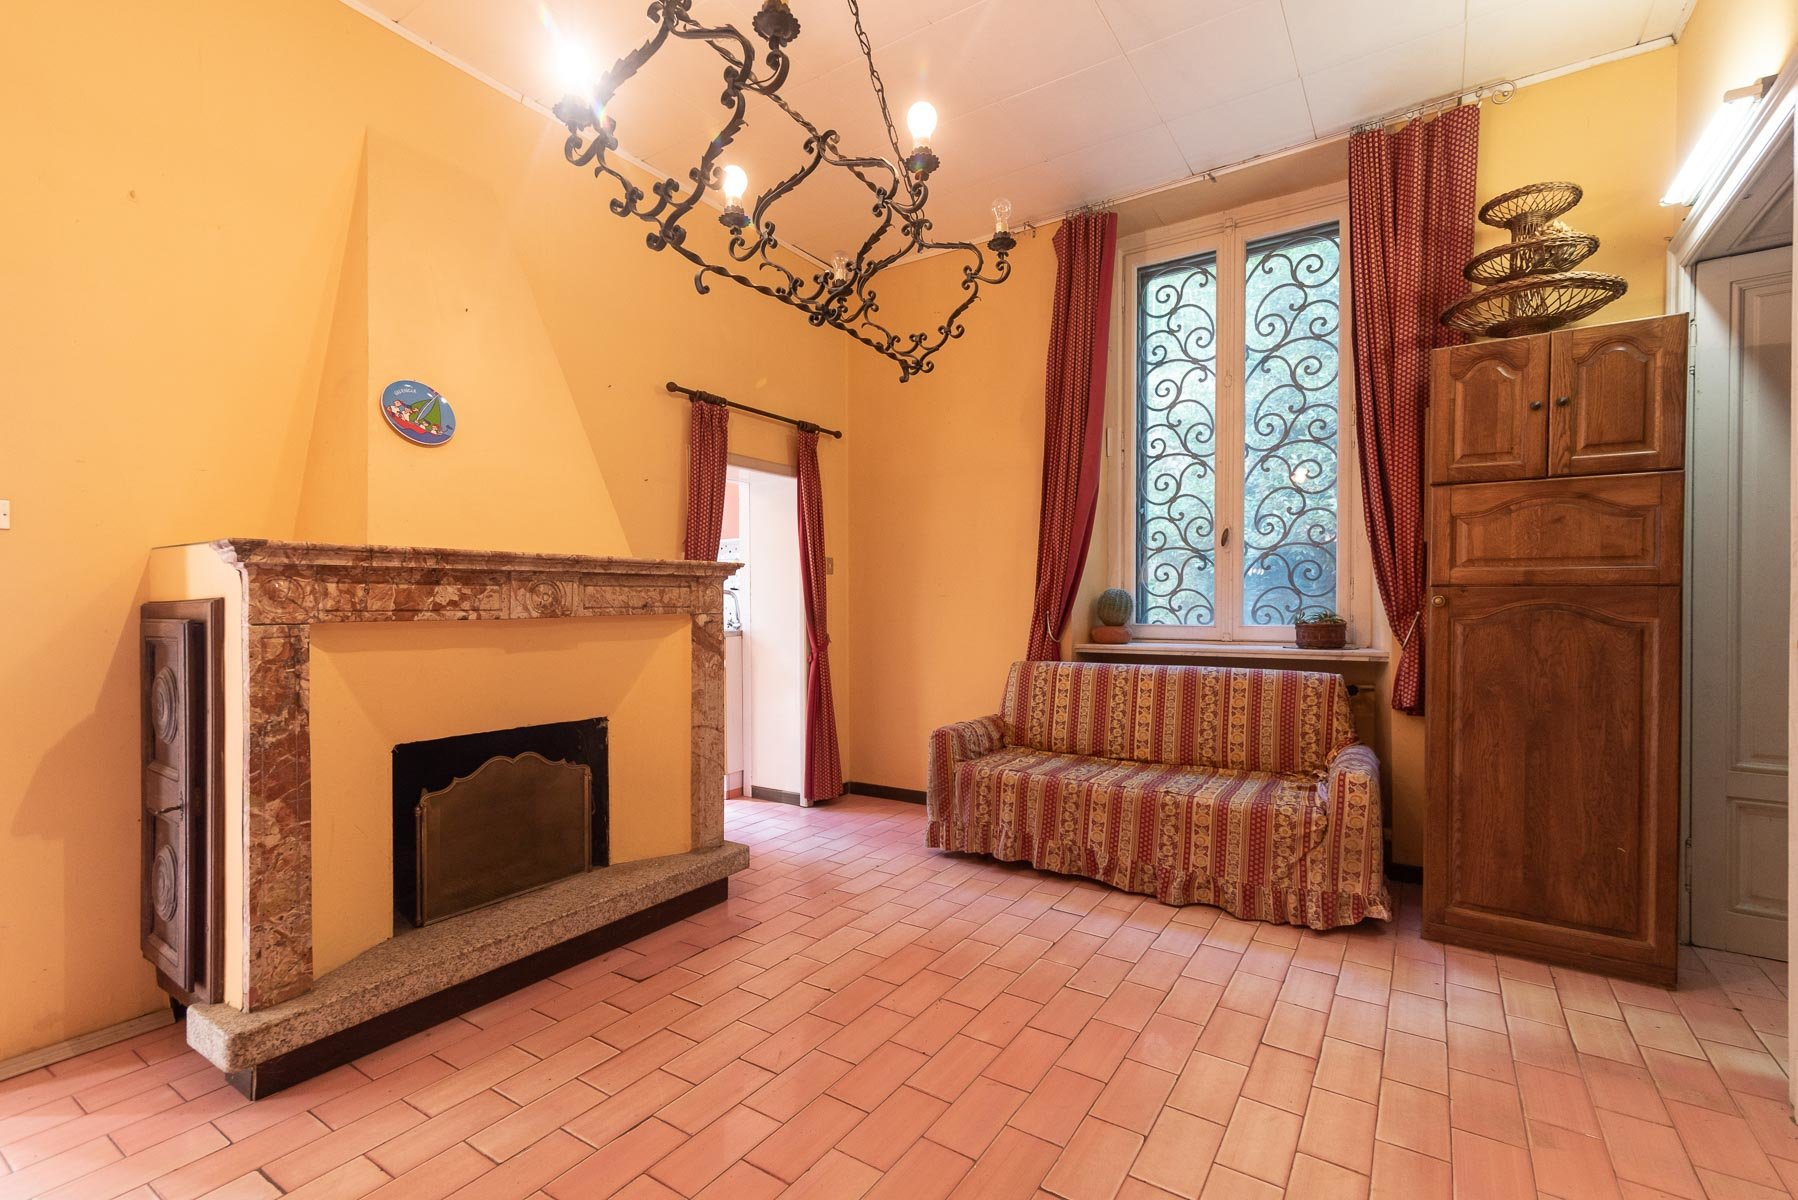 Liberty villa for sale in Stresa - fireplace room